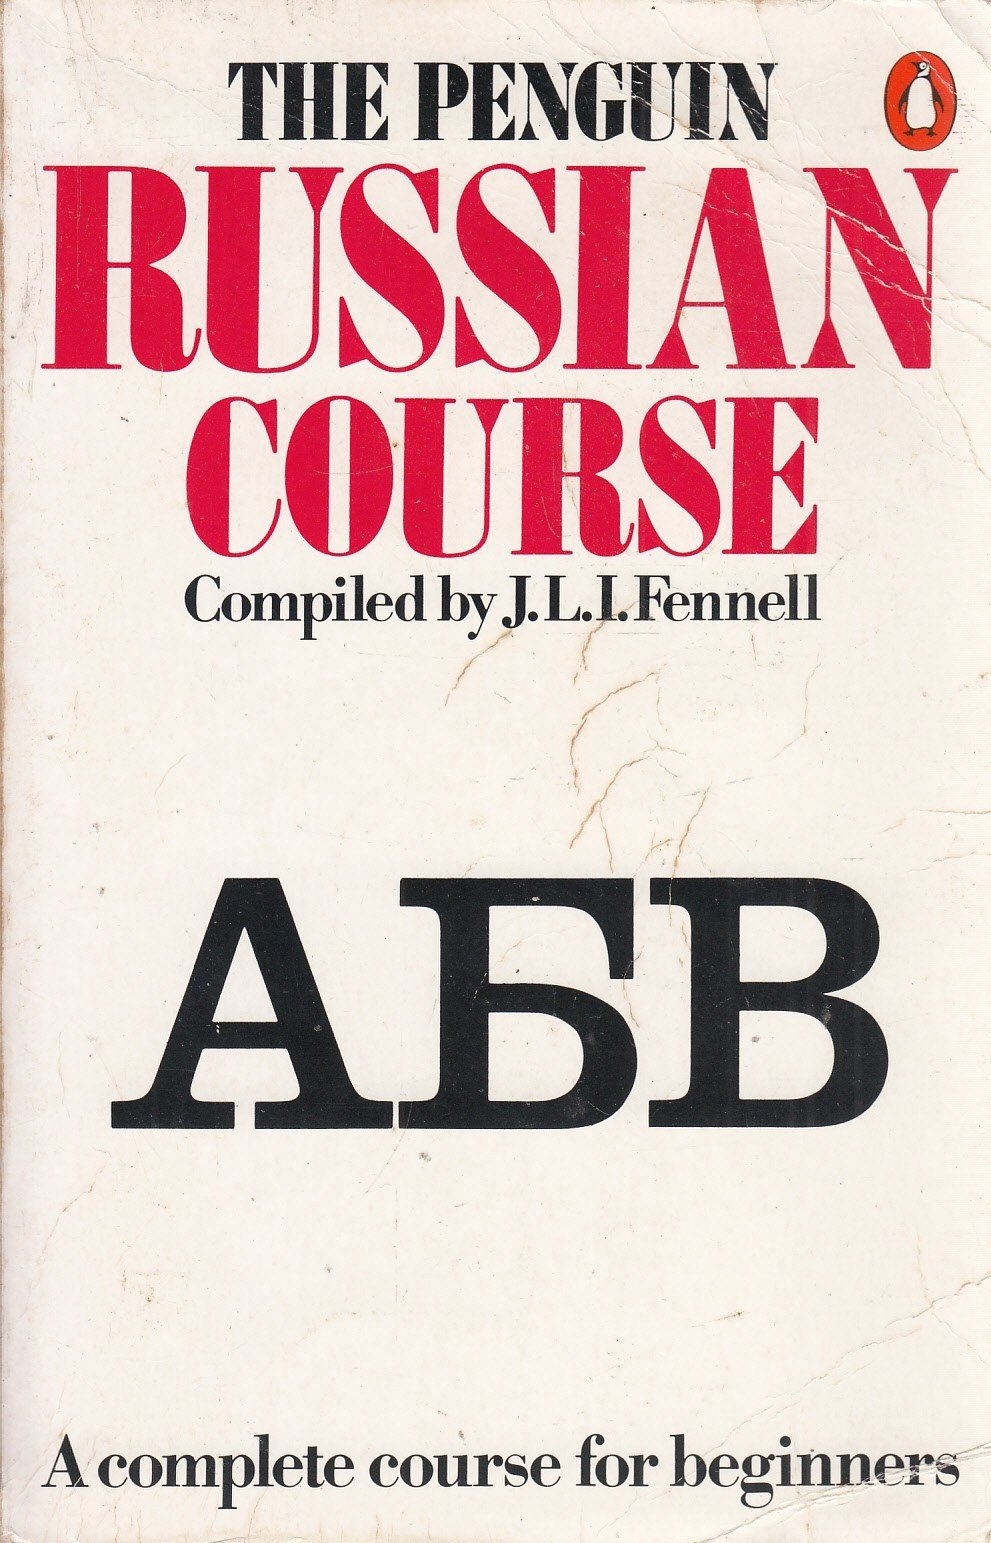 The Penguin Russian Course: A Complete Course for Beginners: J. L. I.  Fennell: 9780140070538: Amazon.com: Books